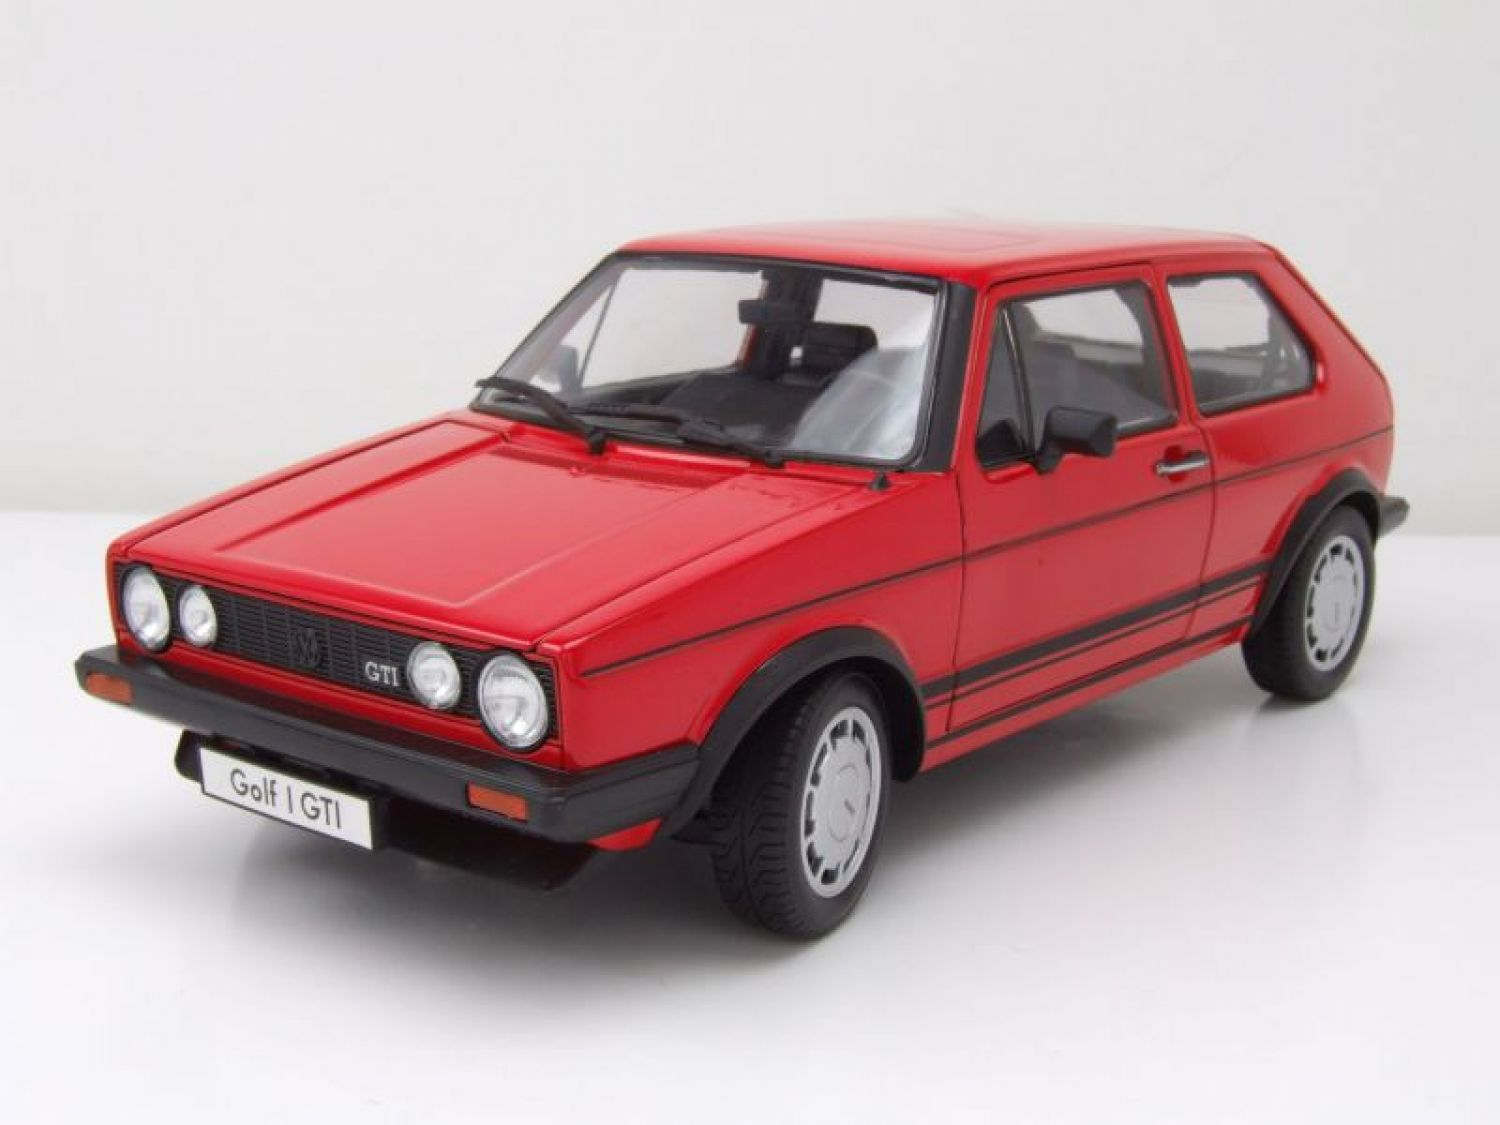 vw golf 1 gti pirelli rot modellauto 1 18 welly ebay. Black Bedroom Furniture Sets. Home Design Ideas